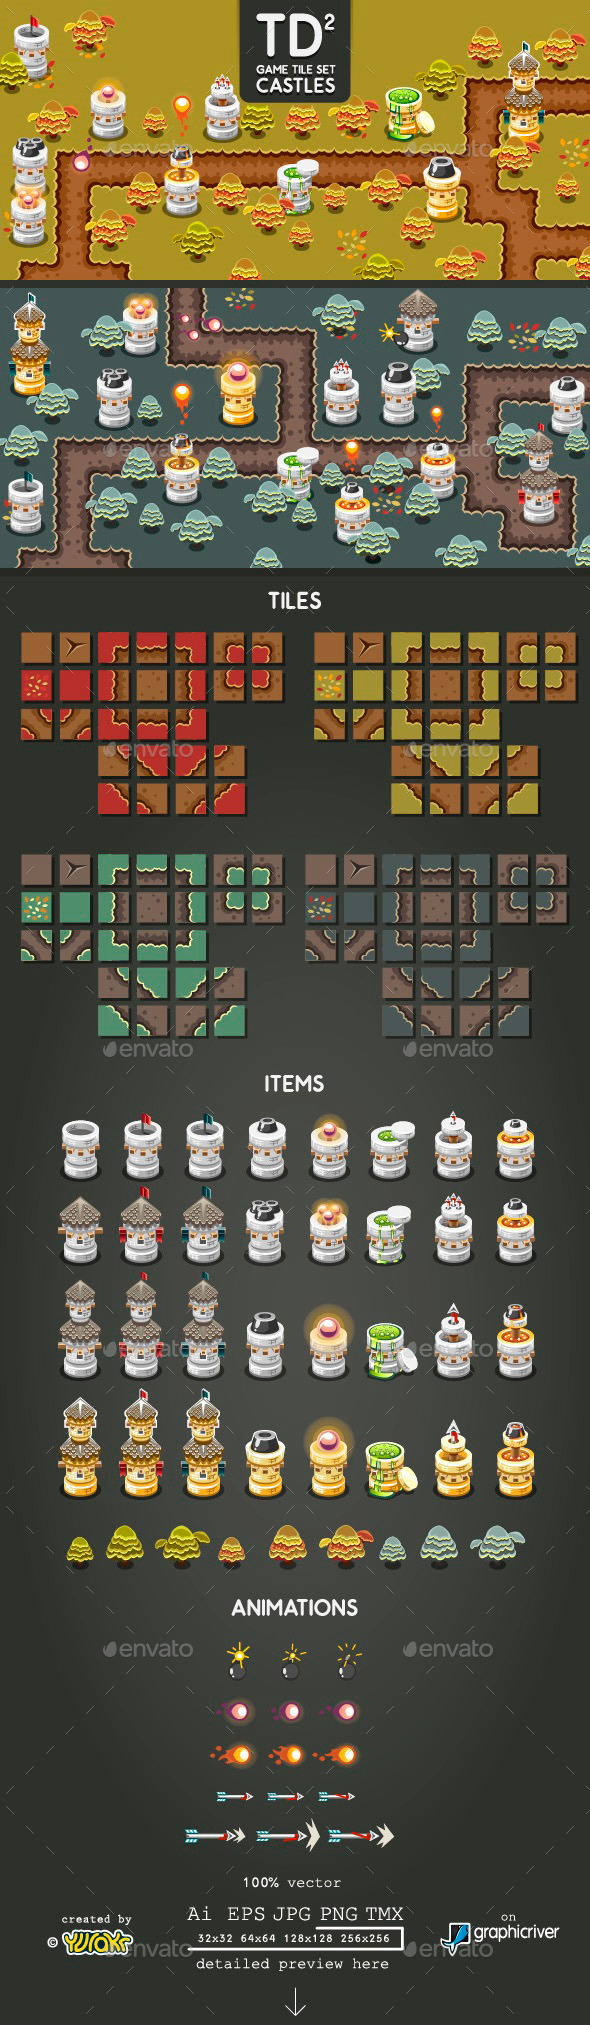 Tower Defence Game Tile Set Two